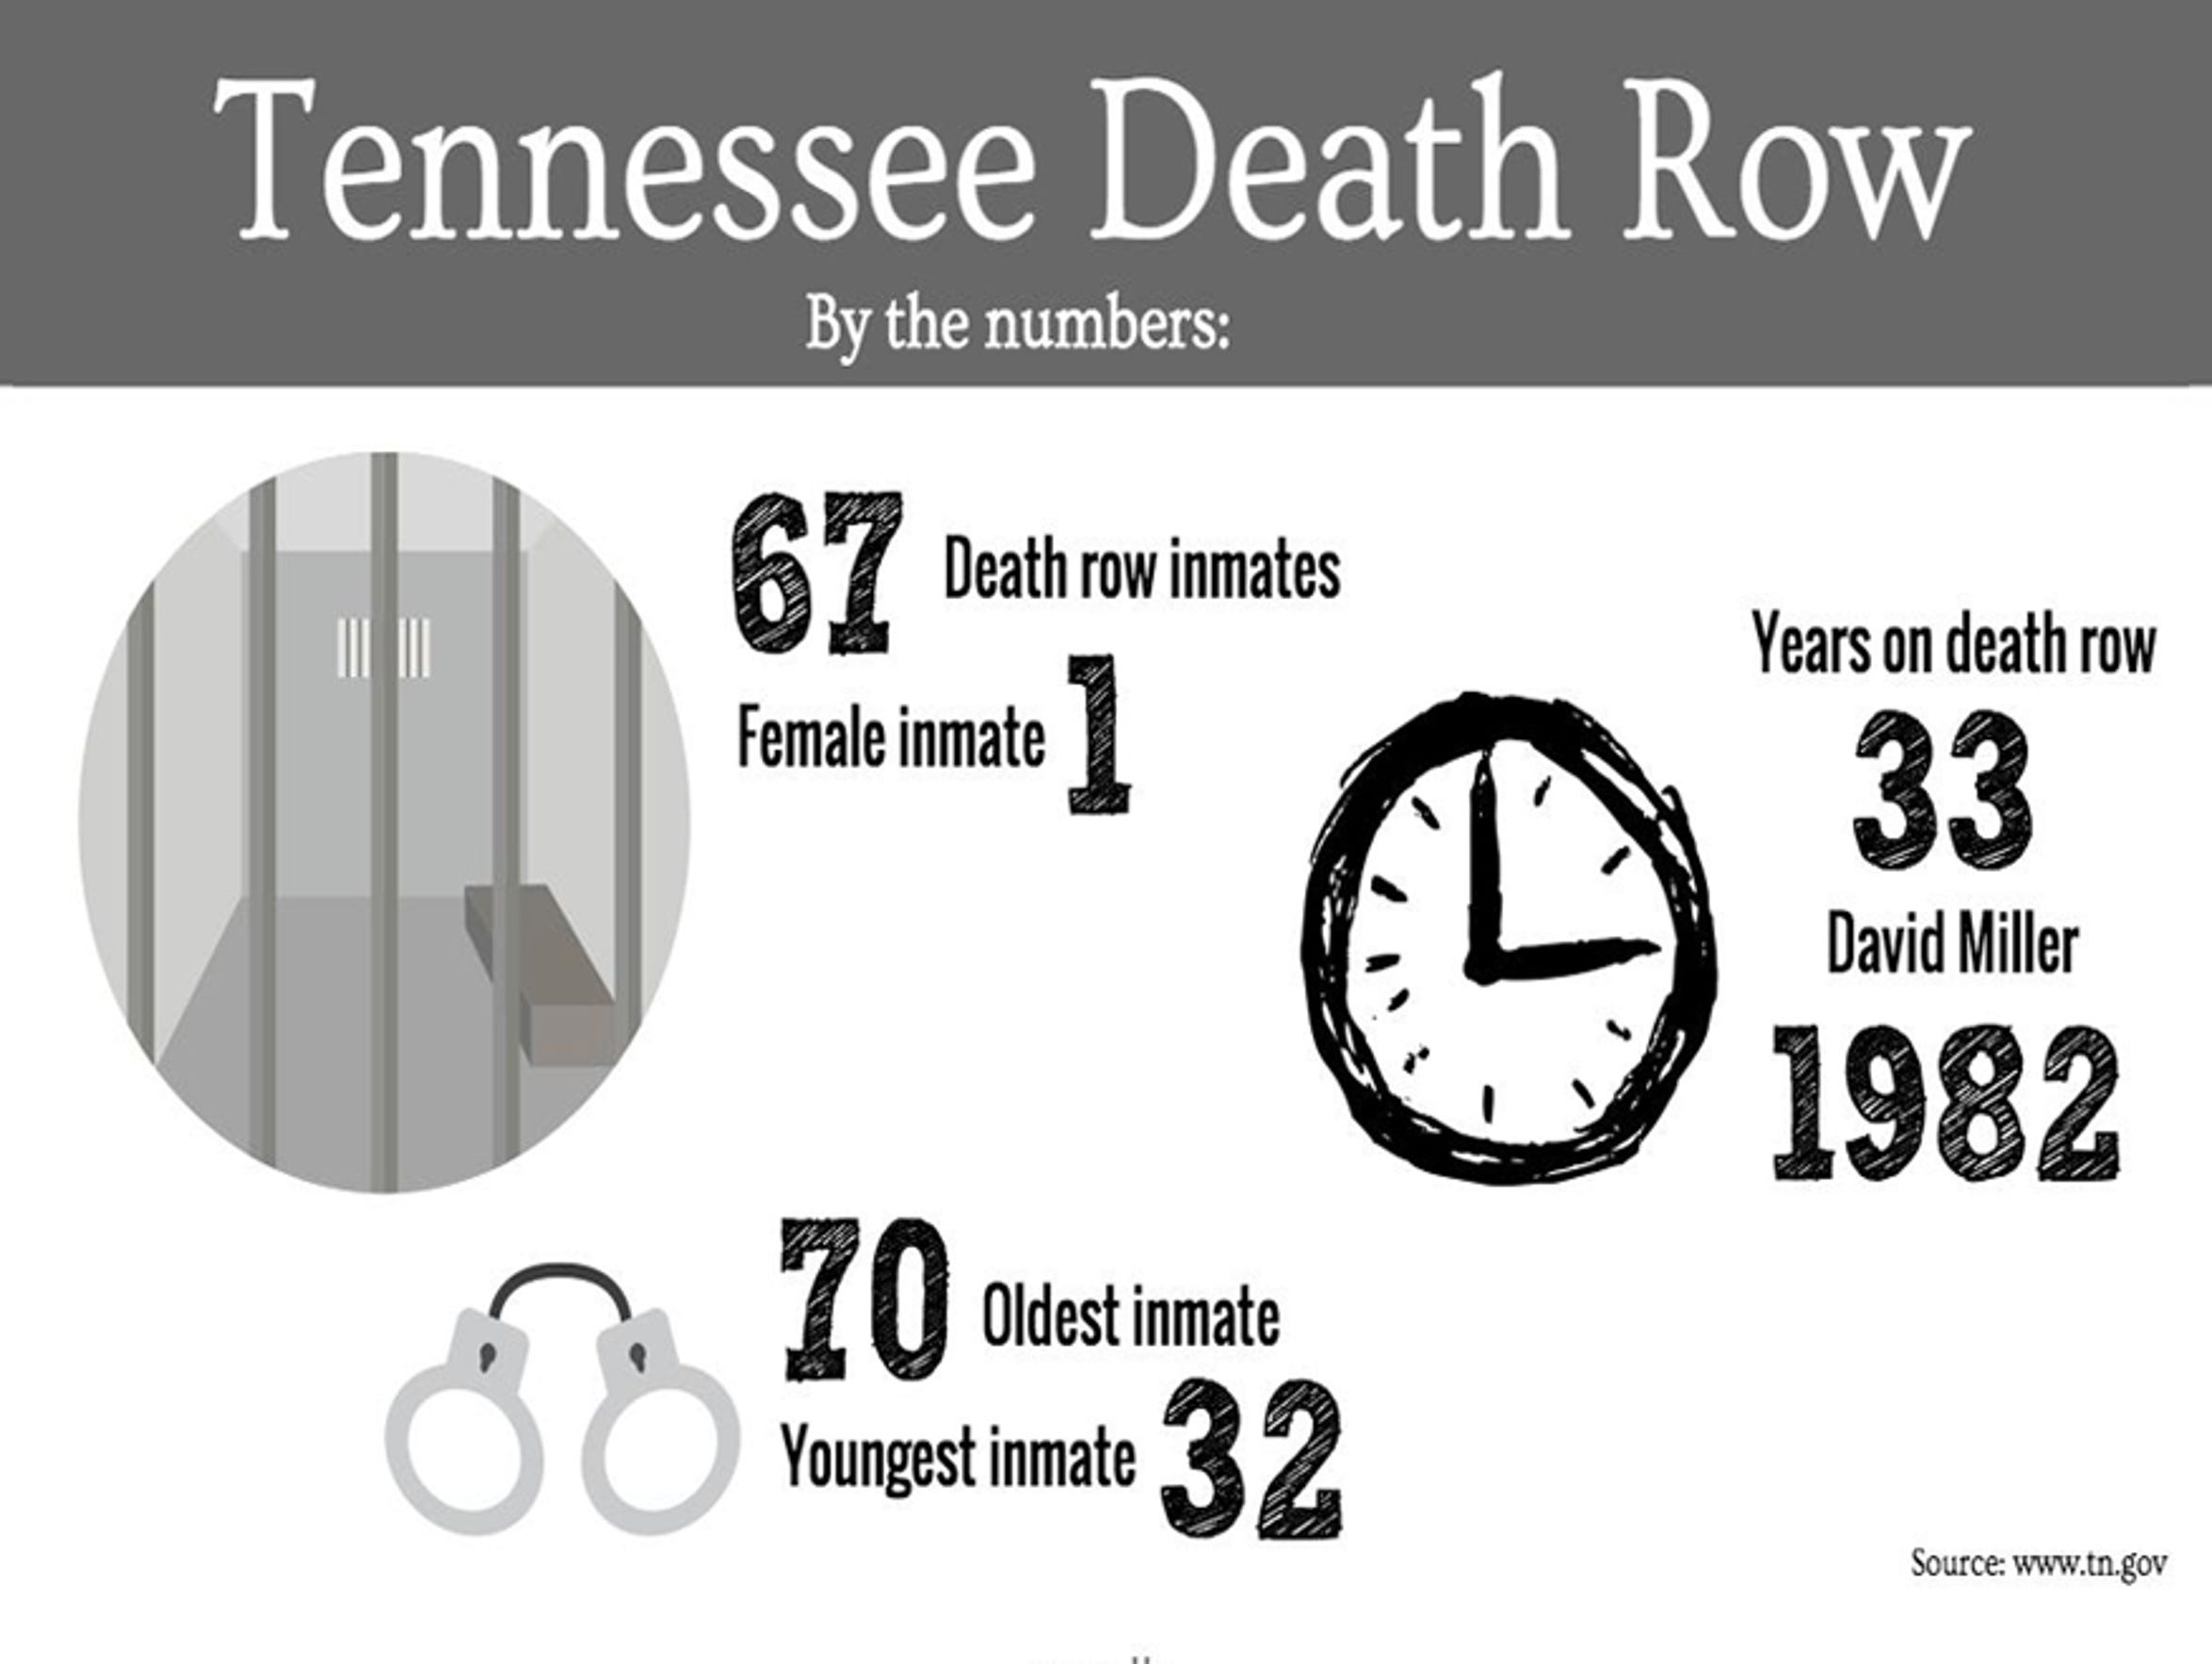 Tennessee Death Row numbers